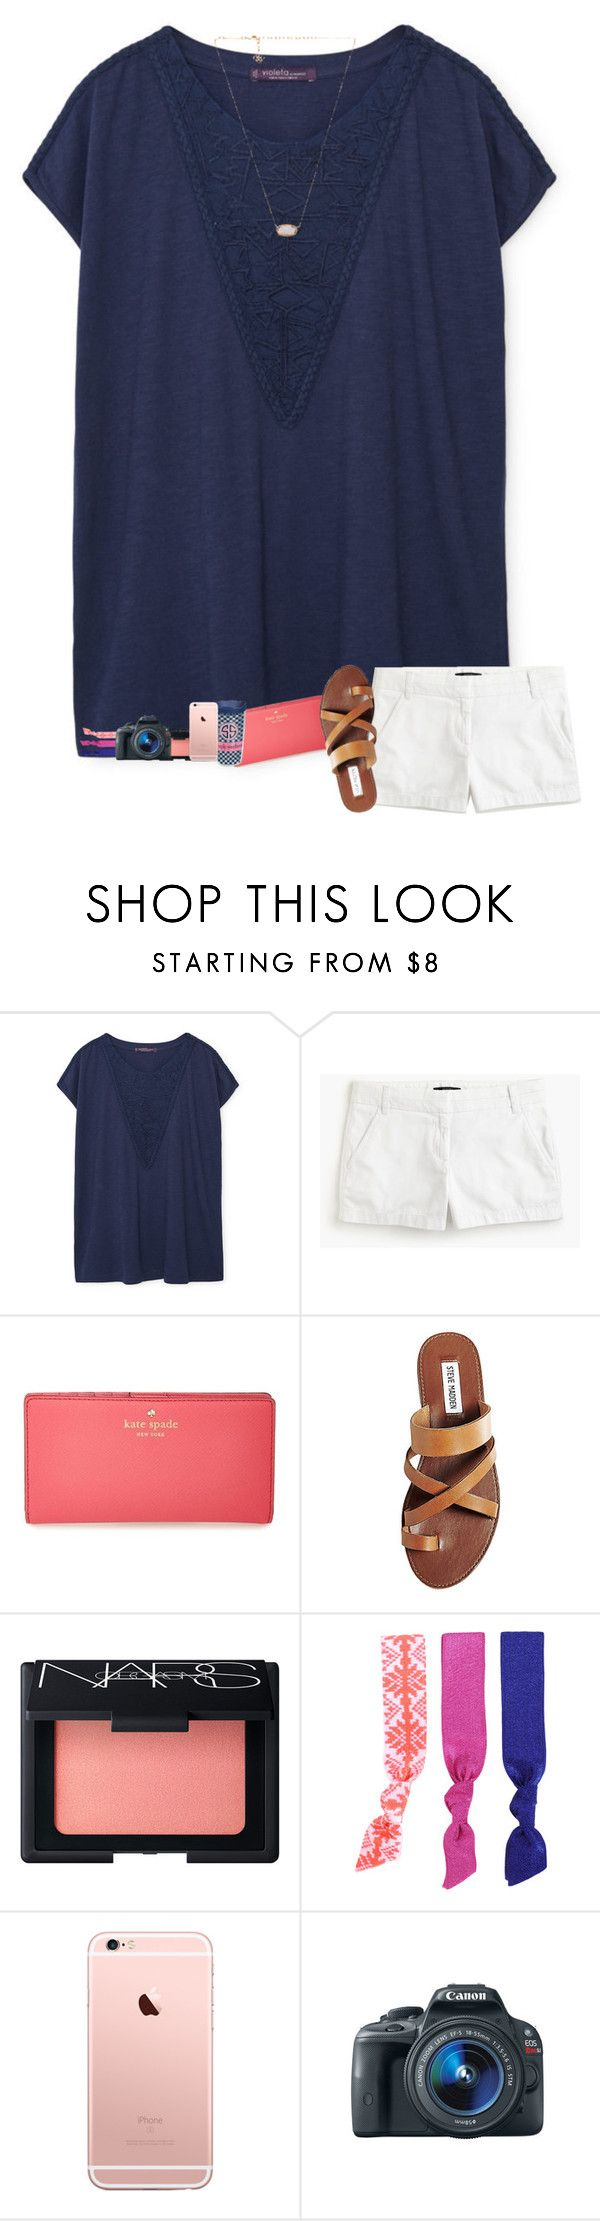 """First xc meet tomorrow!"" by sanddollars ❤ liked on Polyvore featuring Violeta by Mango, J.Crew, Kate Spade, Steve Madden, NARS Cosmetics, Tervis, Splendid, Eos and Kendra Scott"